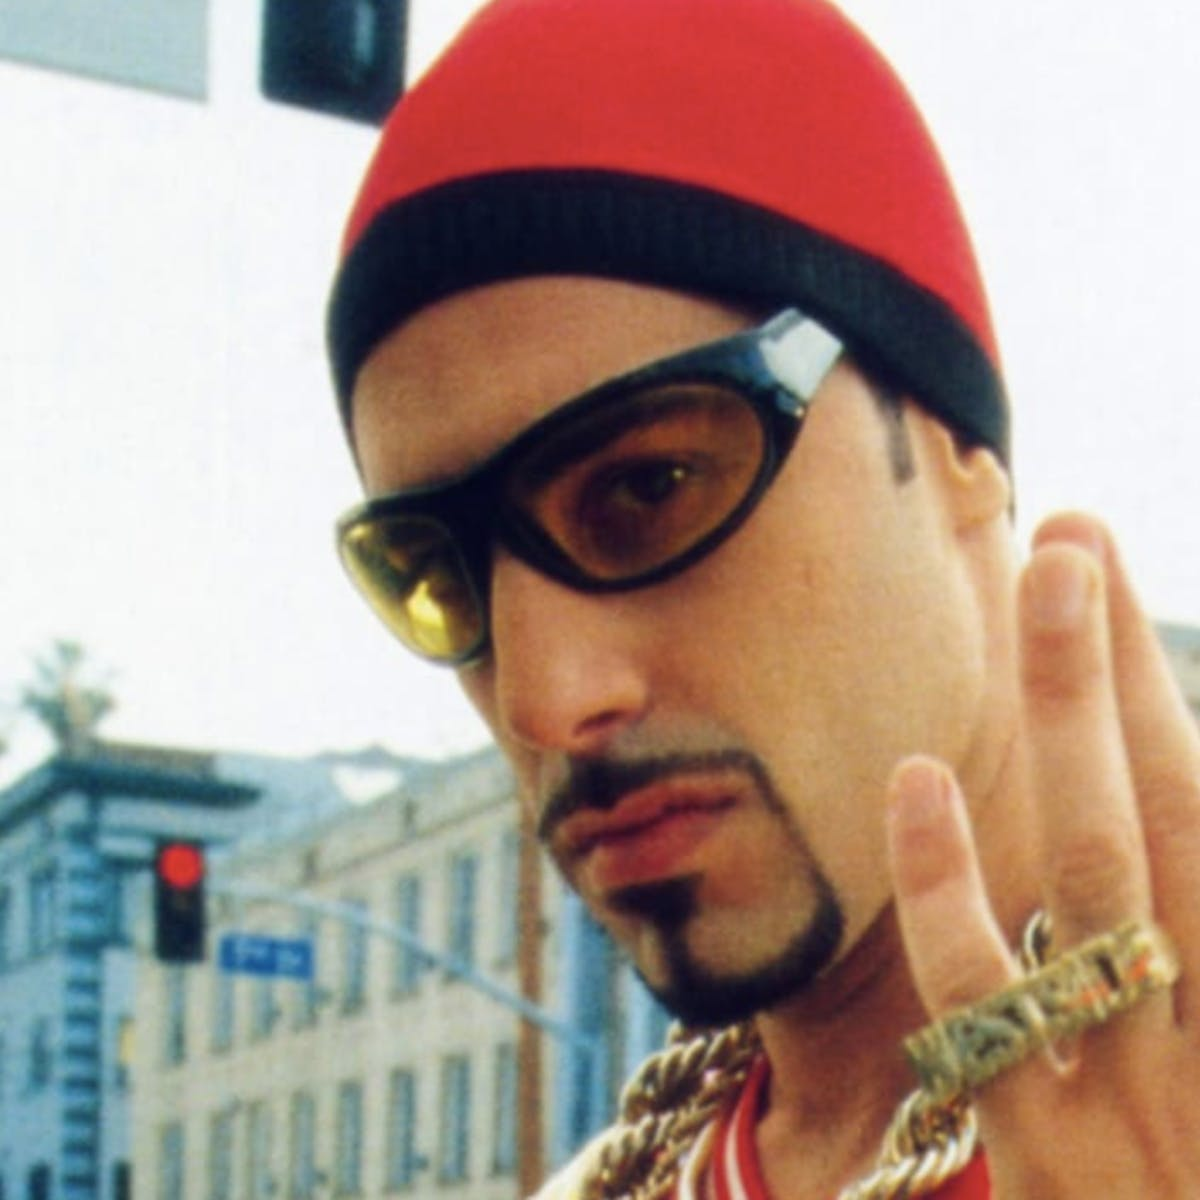 7db27f5ef7a6 Ali G Predicted  Passion of the Christ 2  14 Years Ago